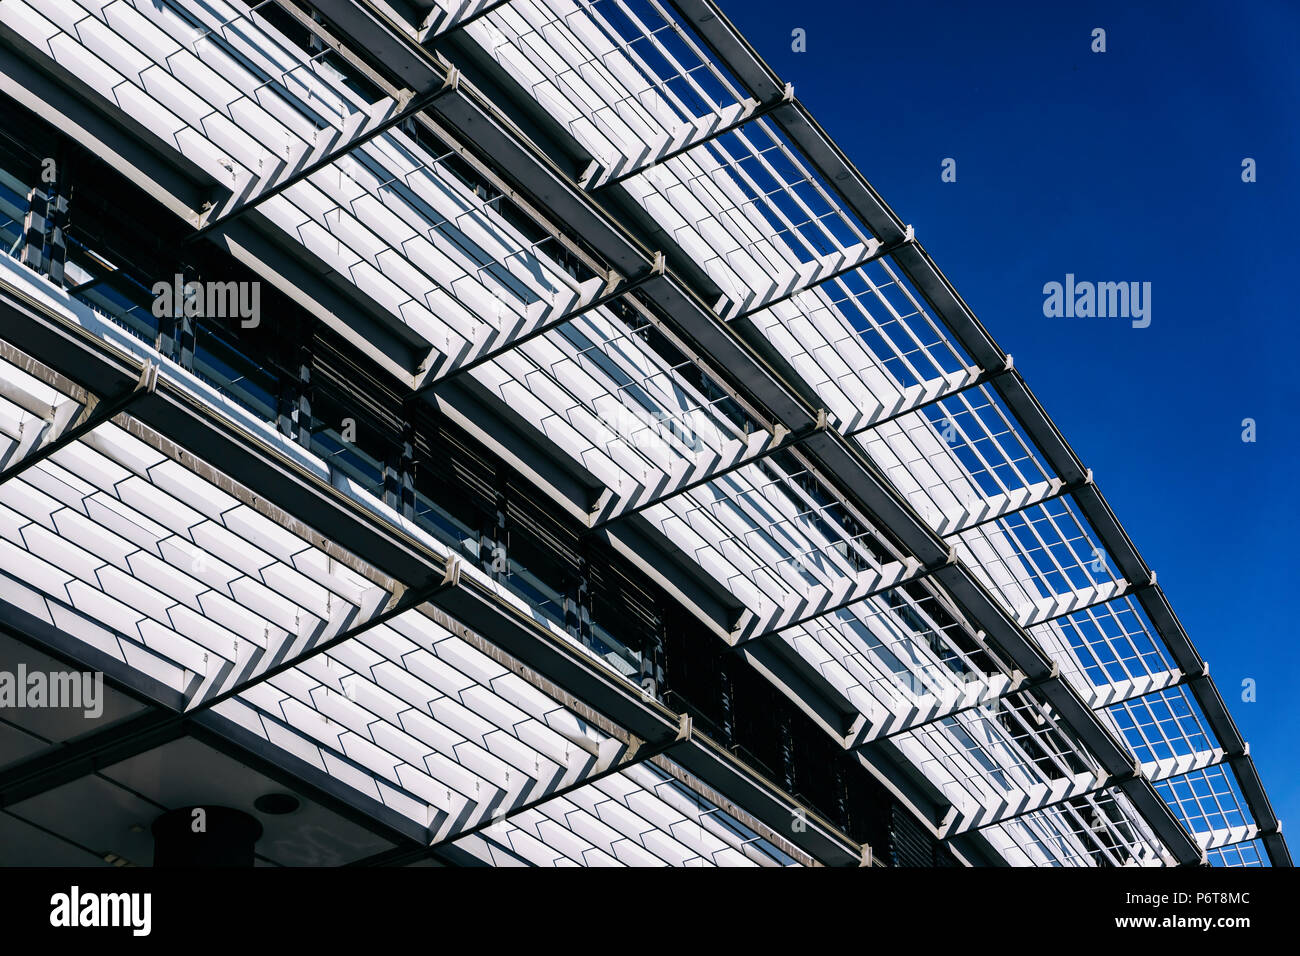 Berlin, Germany, June 06, 2018: Architectural Feature of Modern Shopping Mall Building - Stock Image